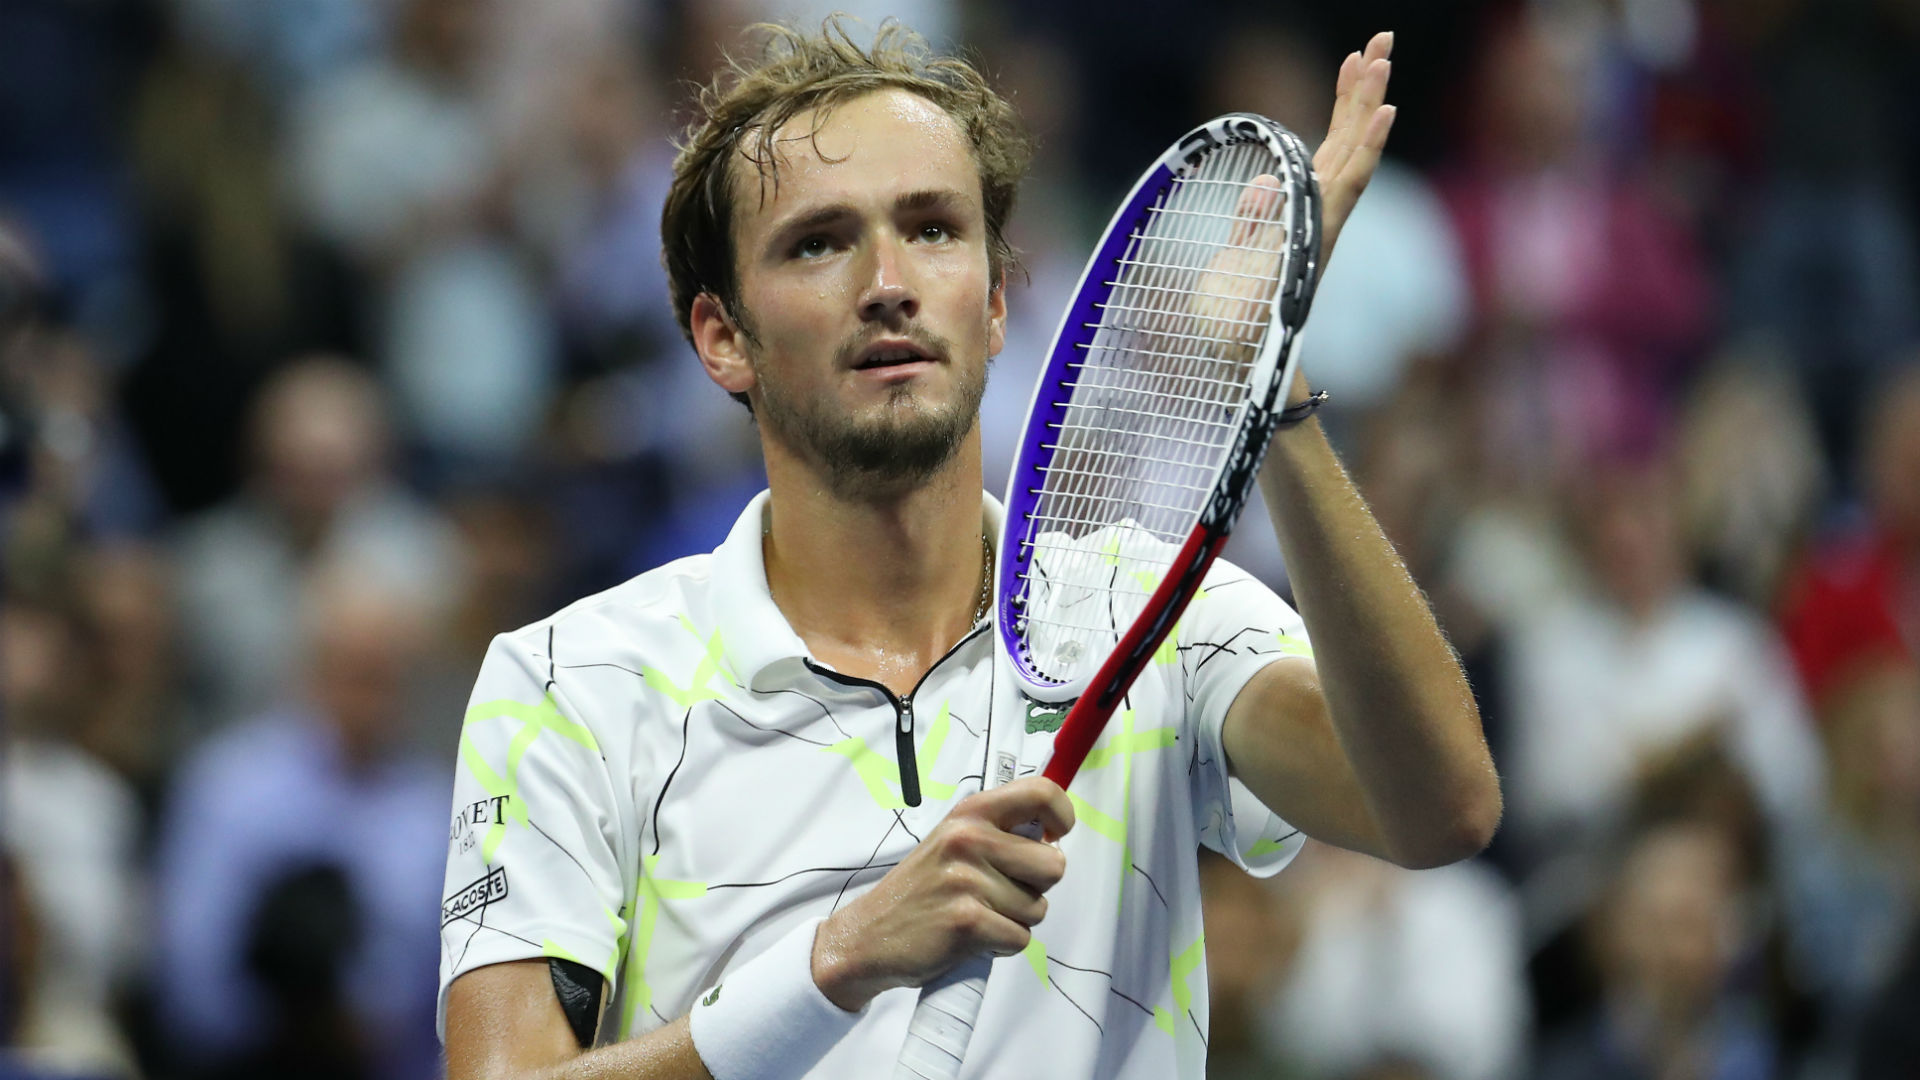 US Open 2019: Daniil Medvedev 'knows how to prepare' for Rafael Nadal rematch